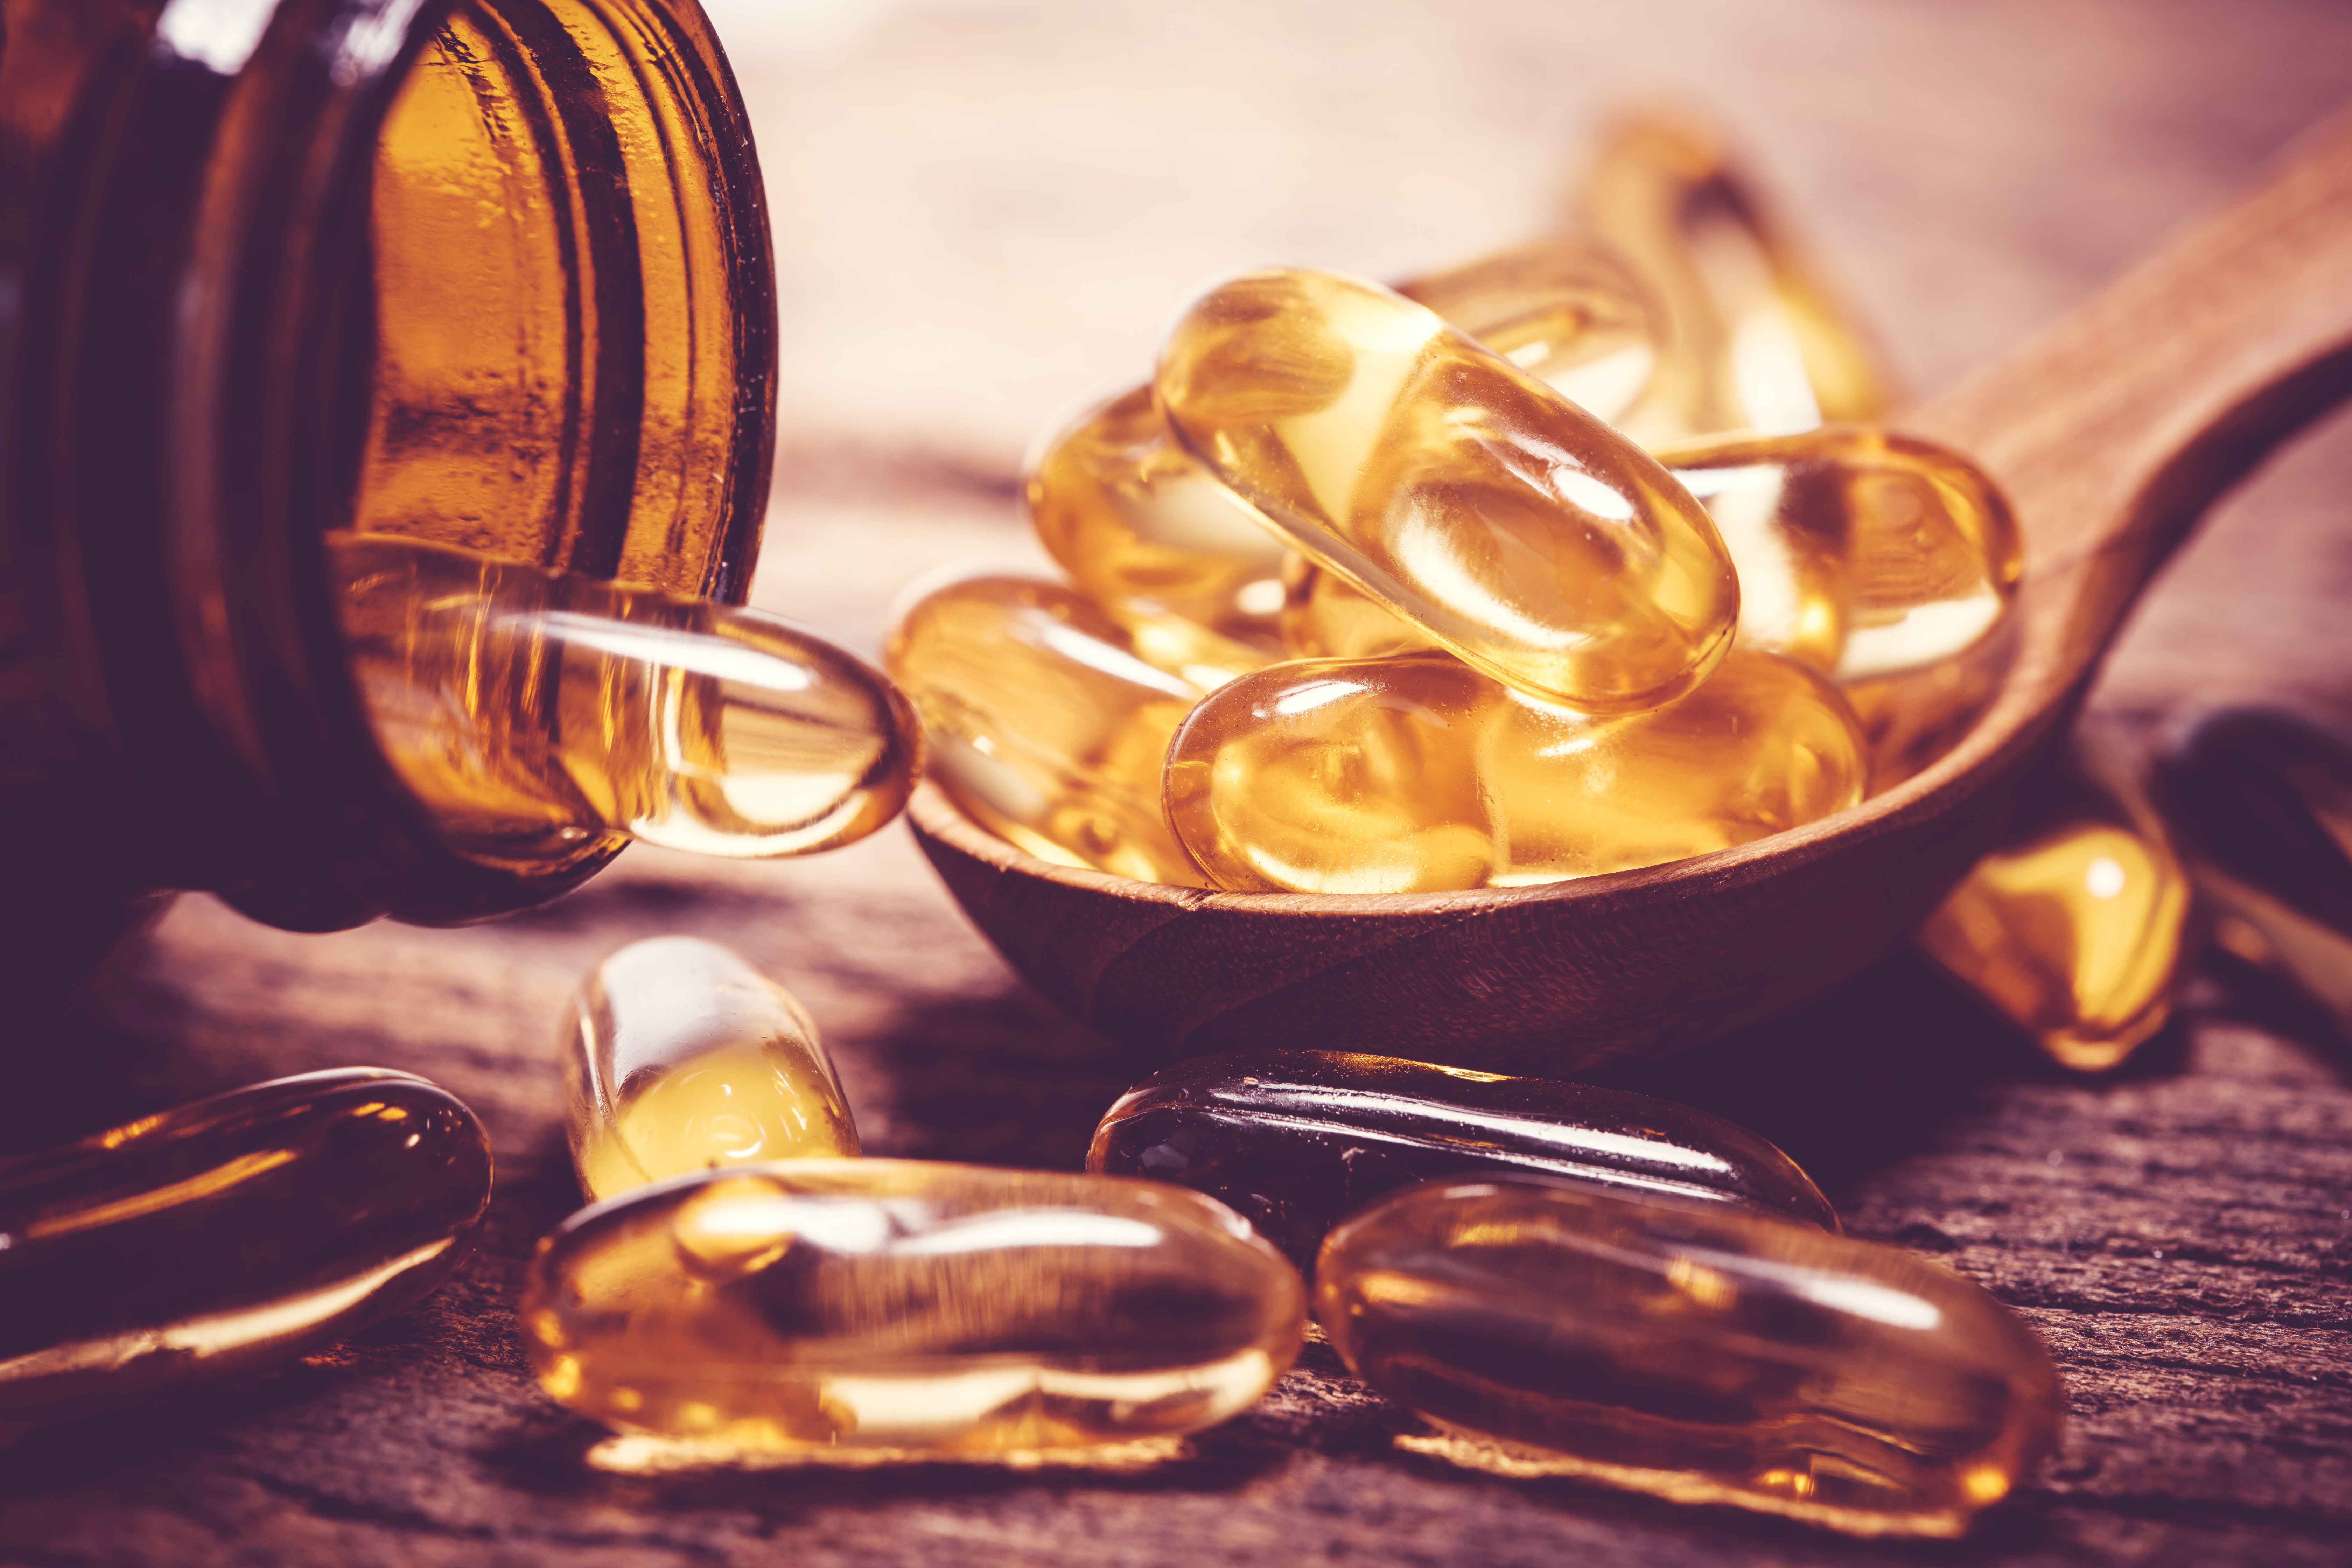 Ditch the Daily Vitamins?